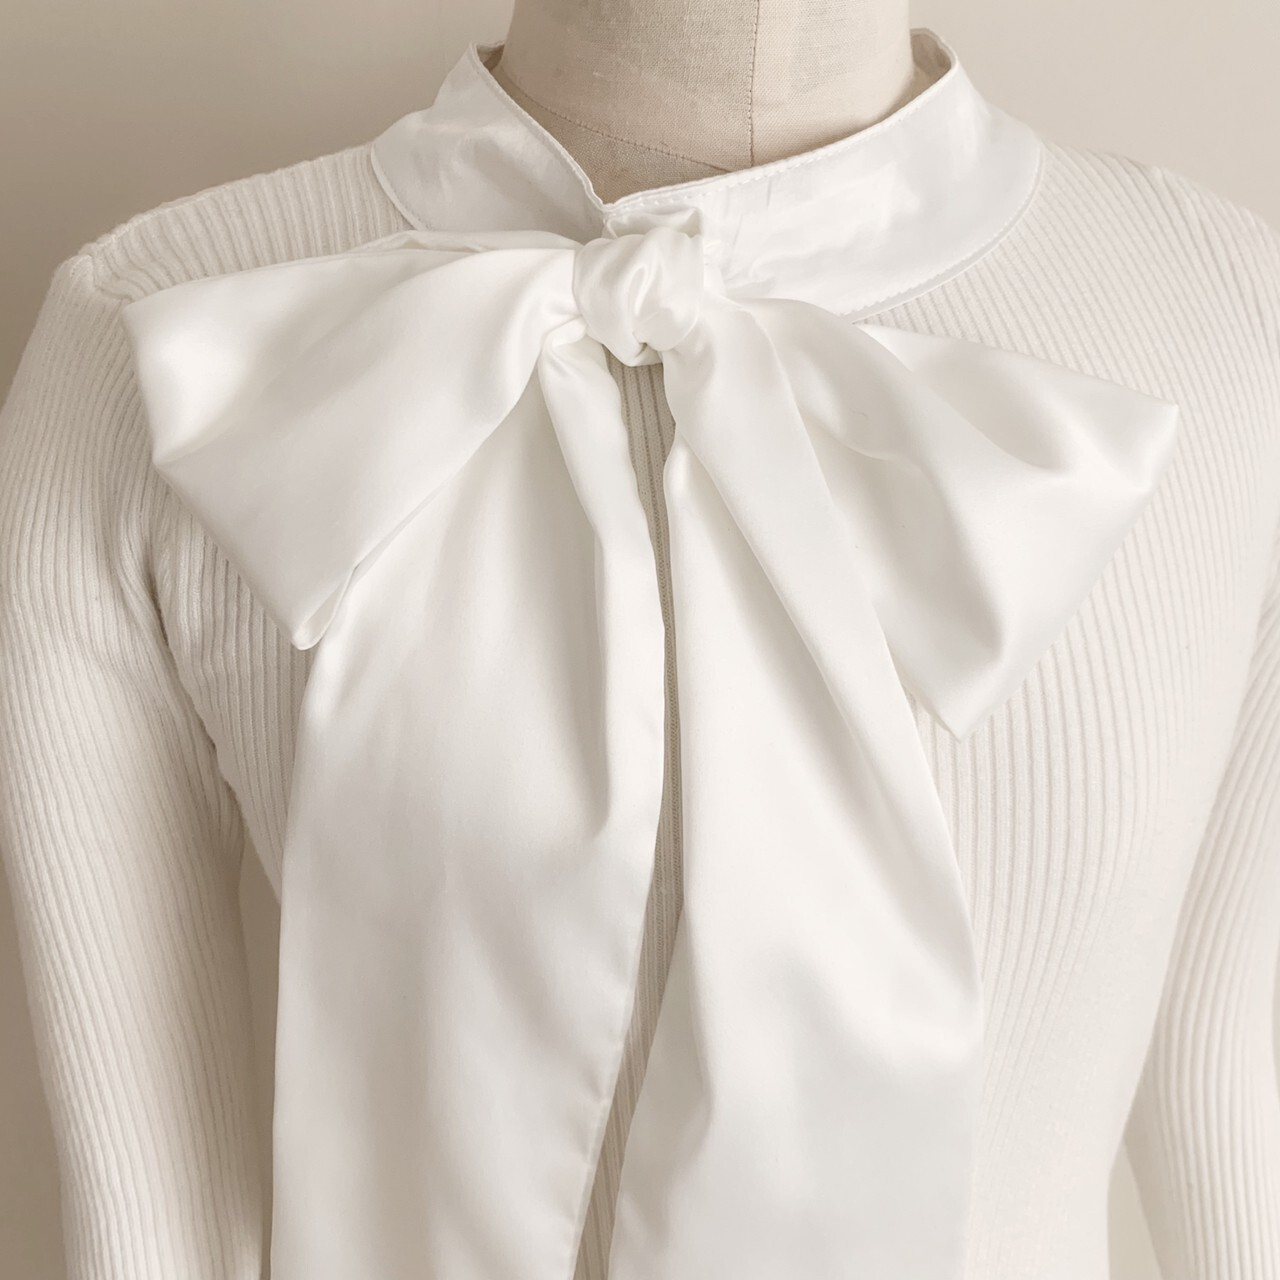 【meltie】chiffon ribbon tie knit